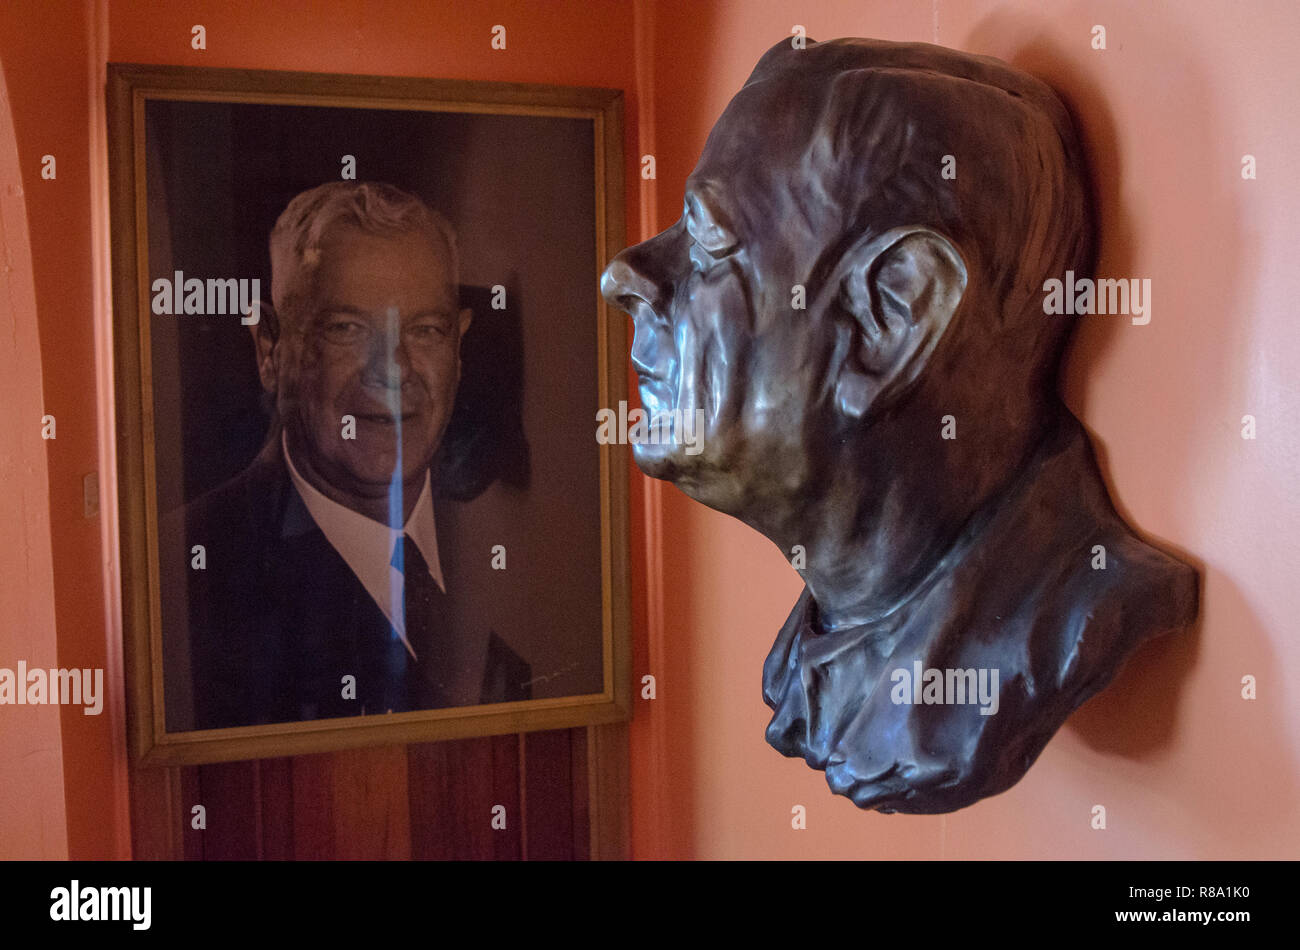 A bust and a portrait of of H.F. Verwoerd, the mastermind of Apartheid, is seen at the former house of Verwoerd's widow Anna, in Orania, the Northern Cape, Friday, December 13, 2013. Orania is an Afrikaner (only) town located along the Orange River in the Karoo. Photo: Eva-Lotta Jansson - Stock Image